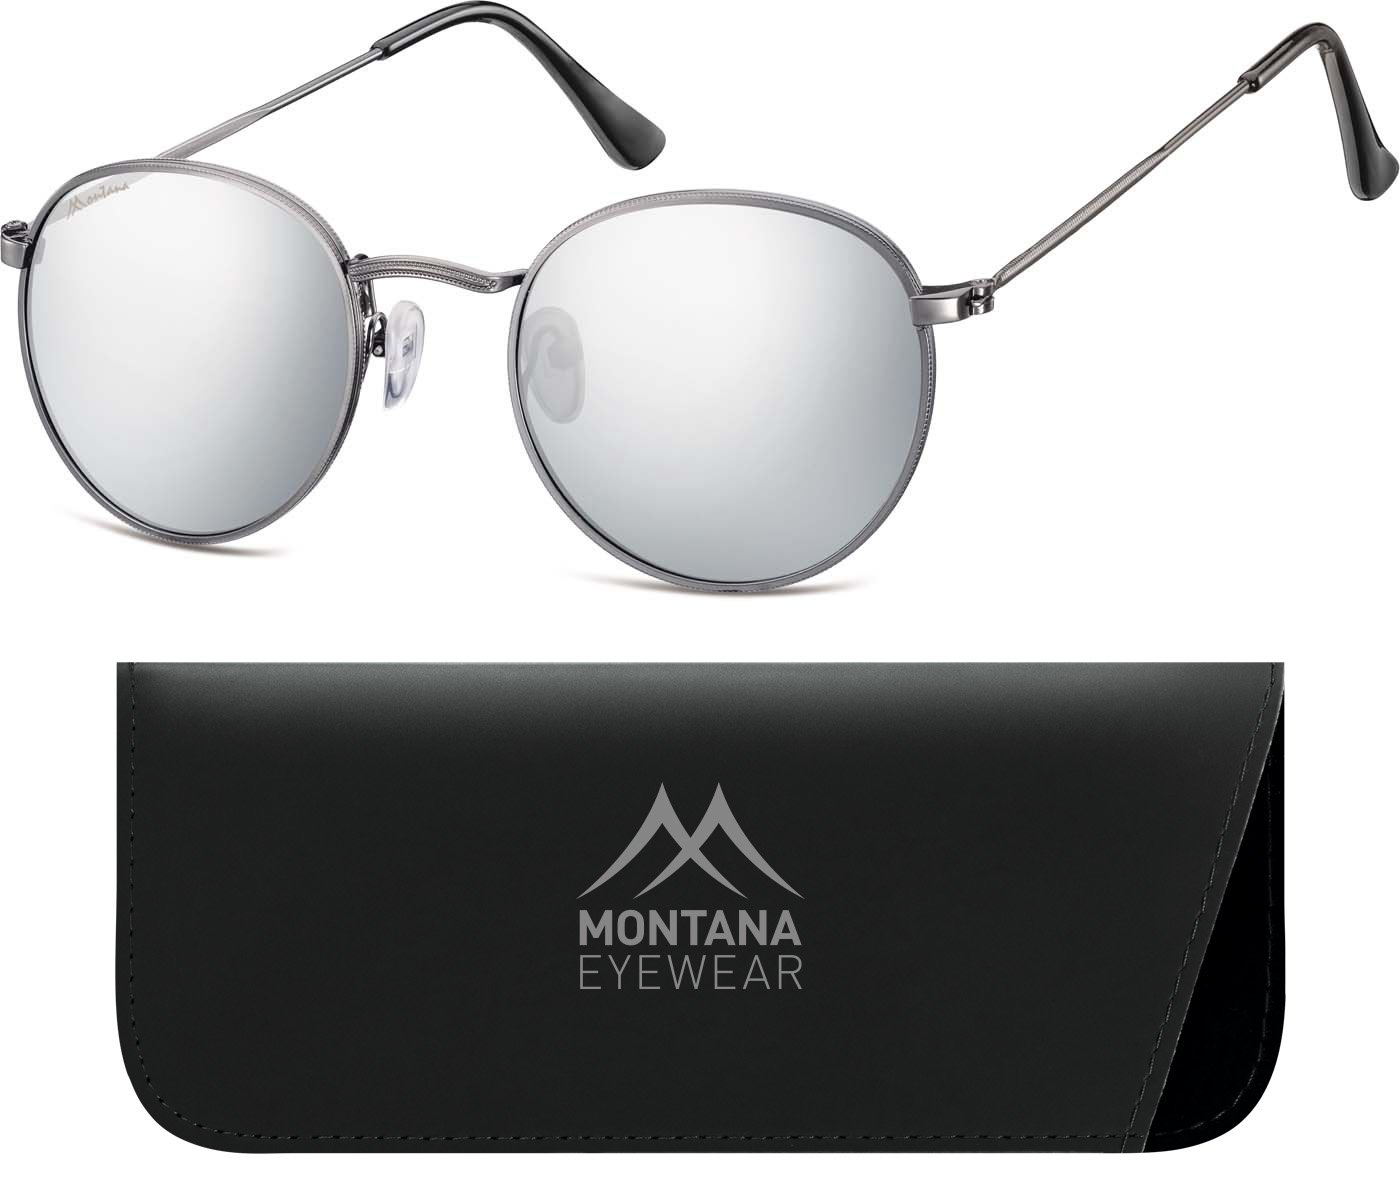 Montana MS92, Occhiali da Sole Unisex-Adulto, Multicoloured (Gunmetal/Revo Blue), Taglia unica